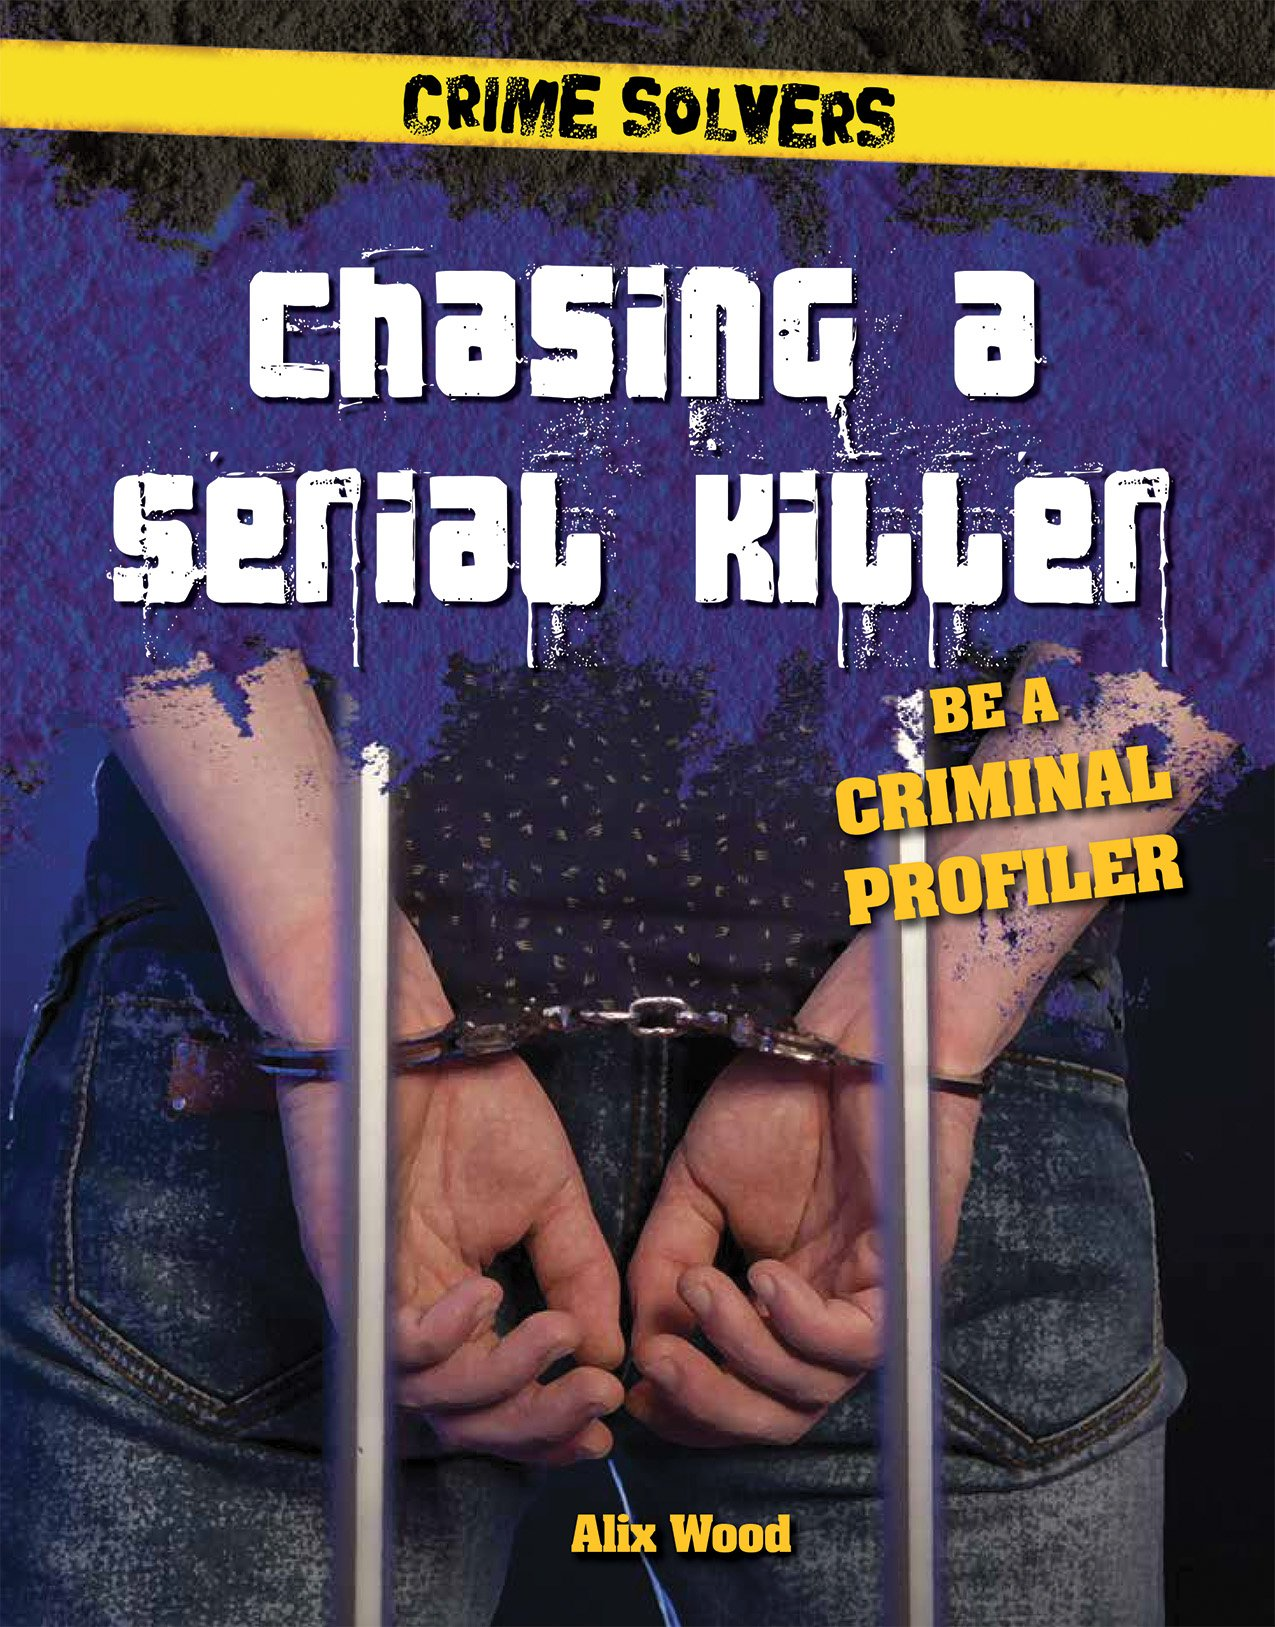 Chasing a Serial Killer: Be a Criminal Profiler (Crime Solvers) pdf